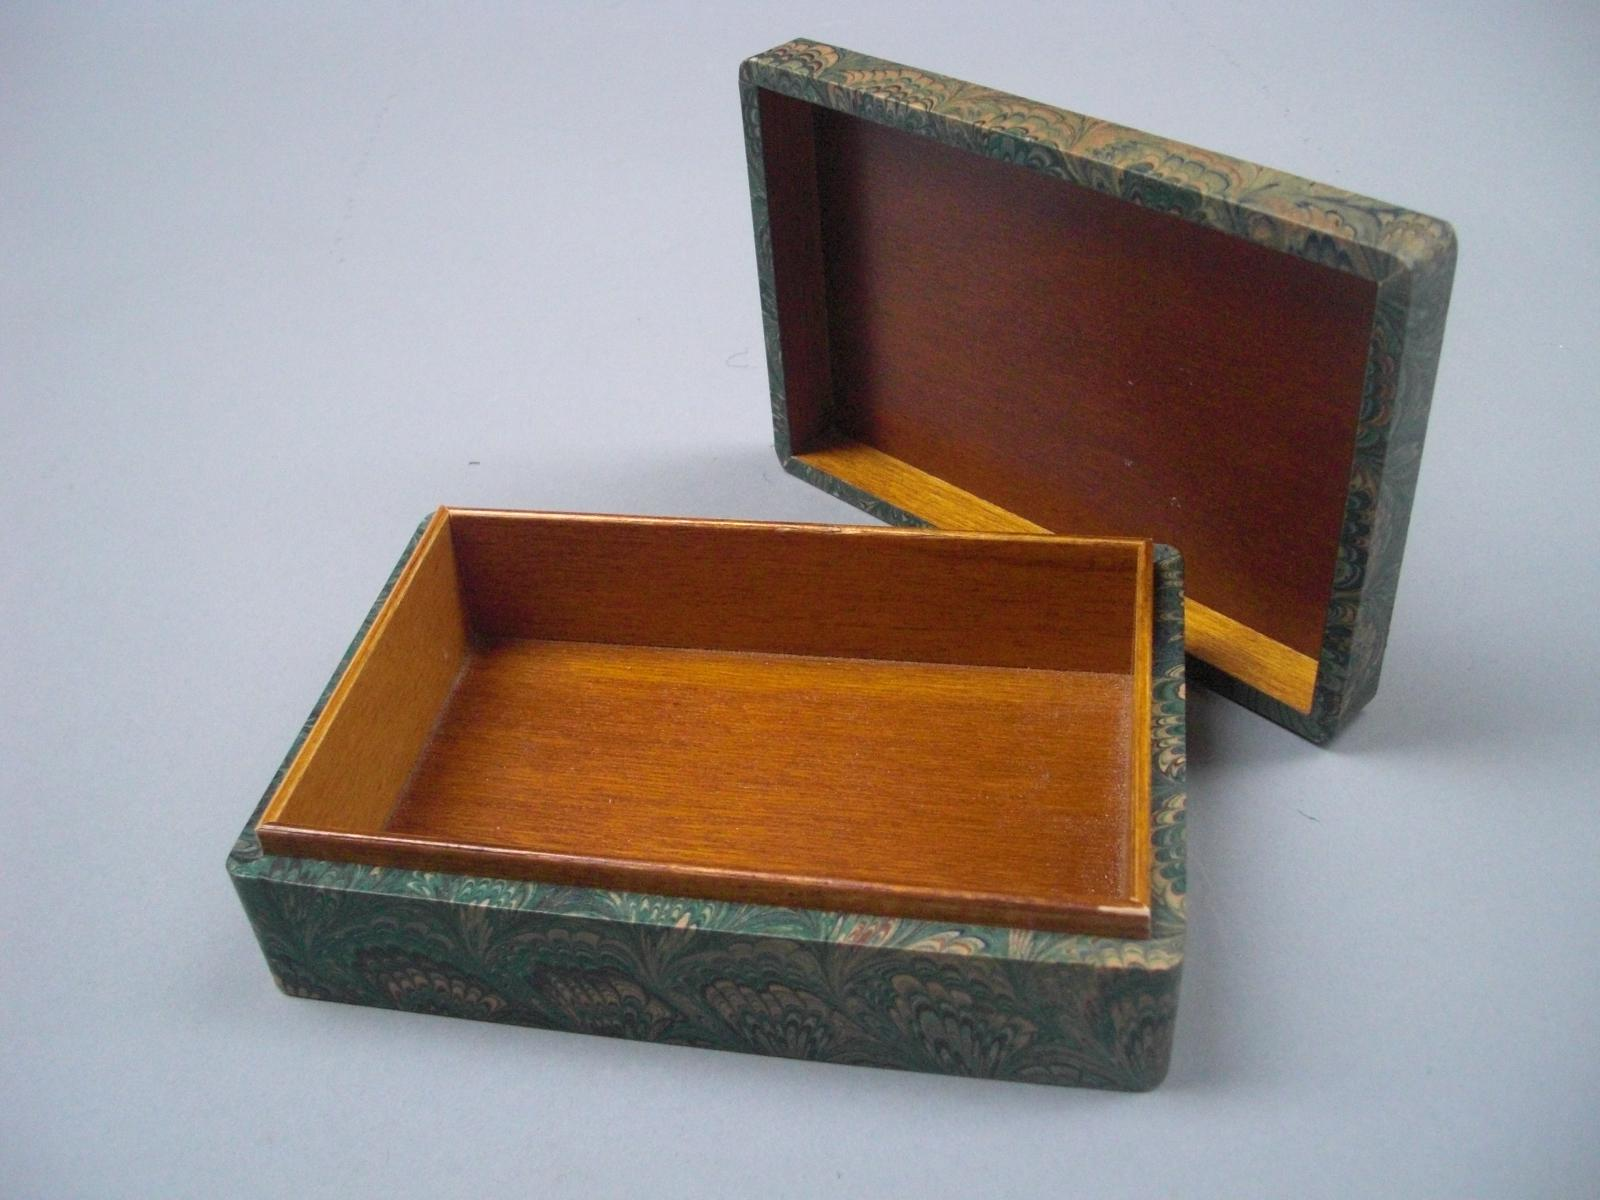 Decorative Keepsake Box Beauteous Decorative Keepsake Boxes  Set Of 3  Chairish Design Ideas